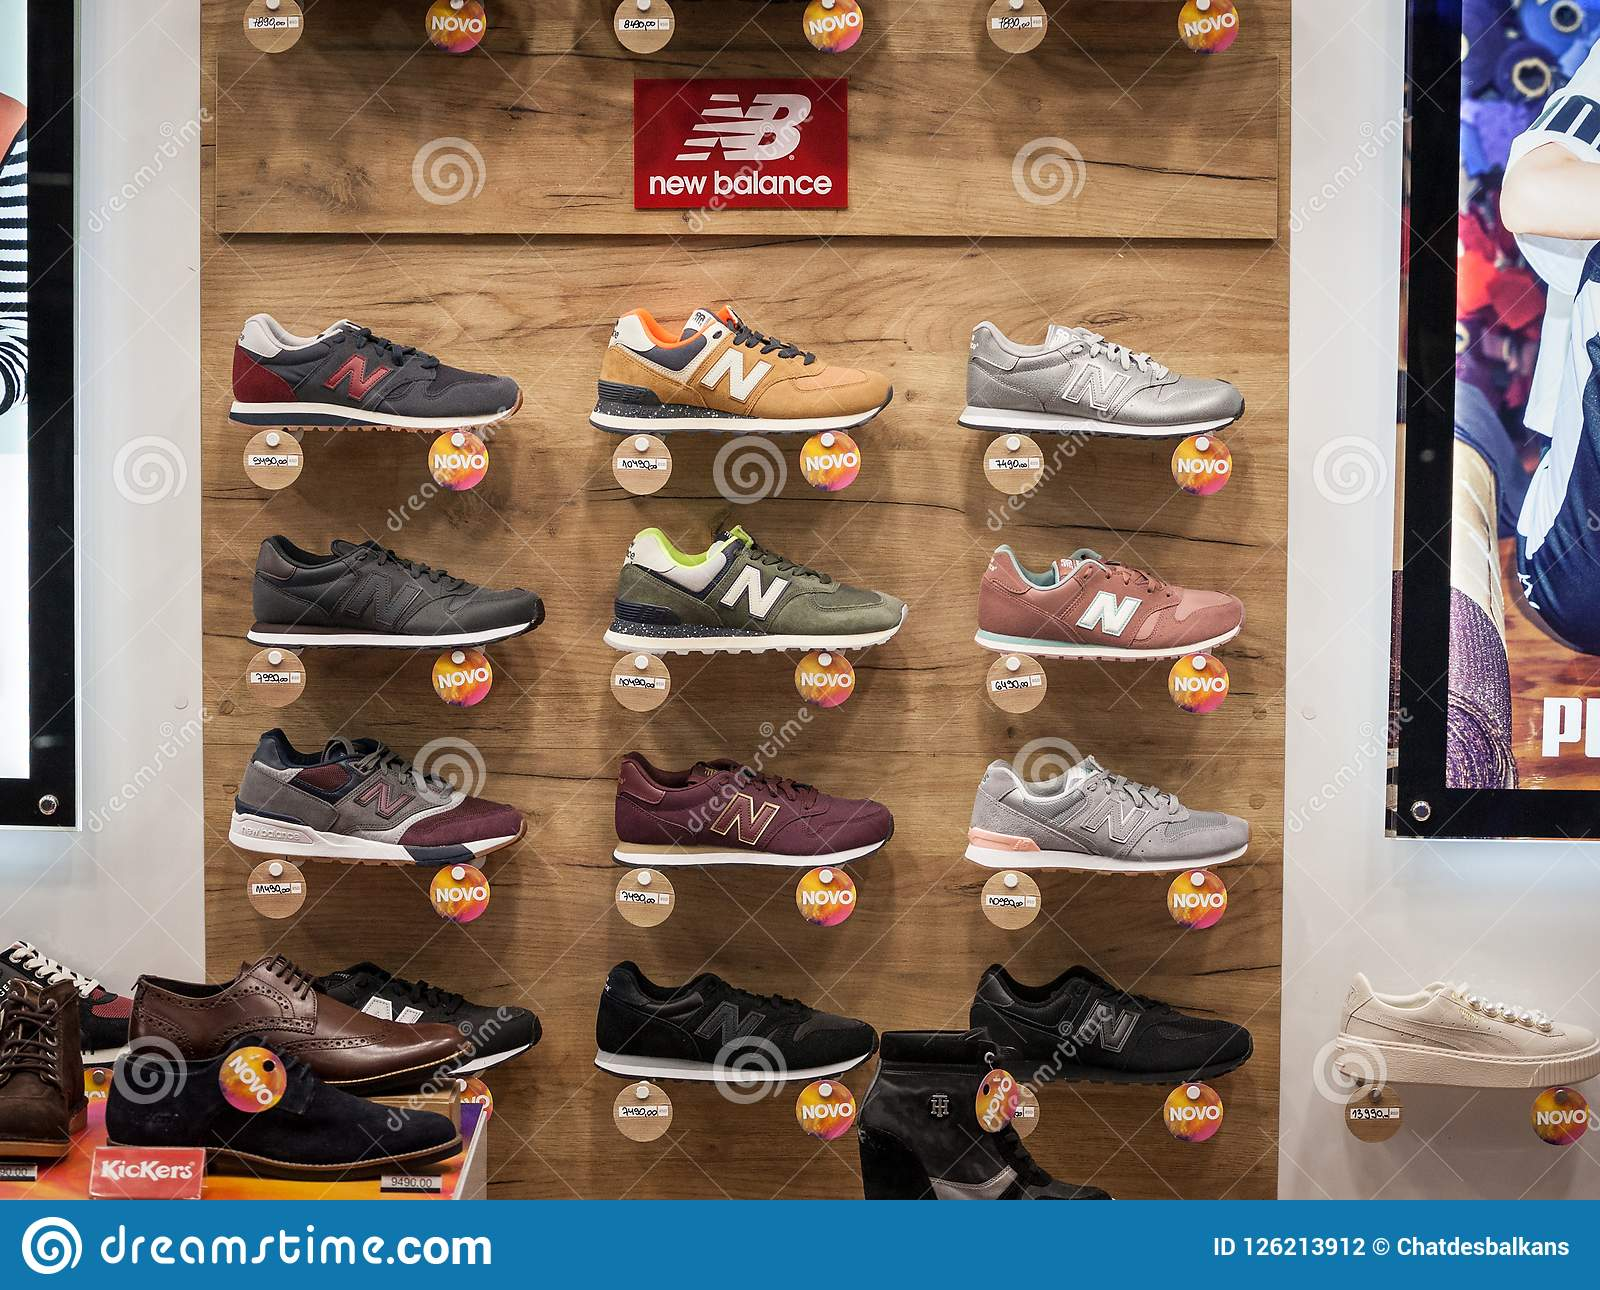 7100e5a556da New Balance Logo And Sneakers On Display In The Window Of Their Main ...